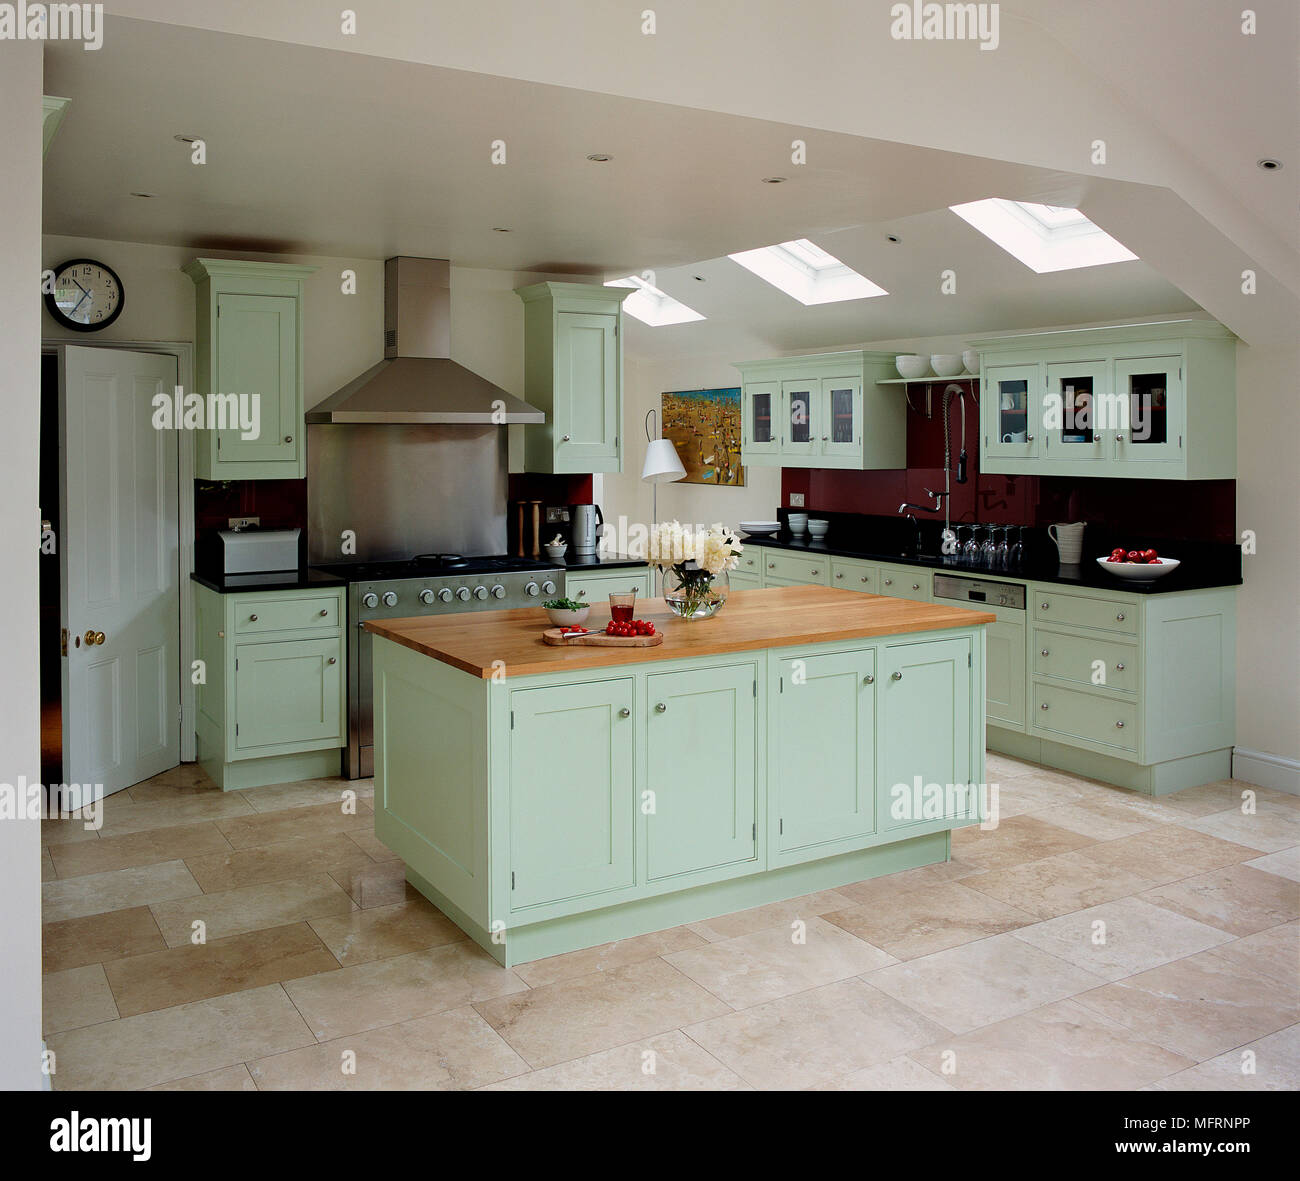 Pale Green Kitchen Units: Modern Country Style Kitchen With Pale Green Units Stock